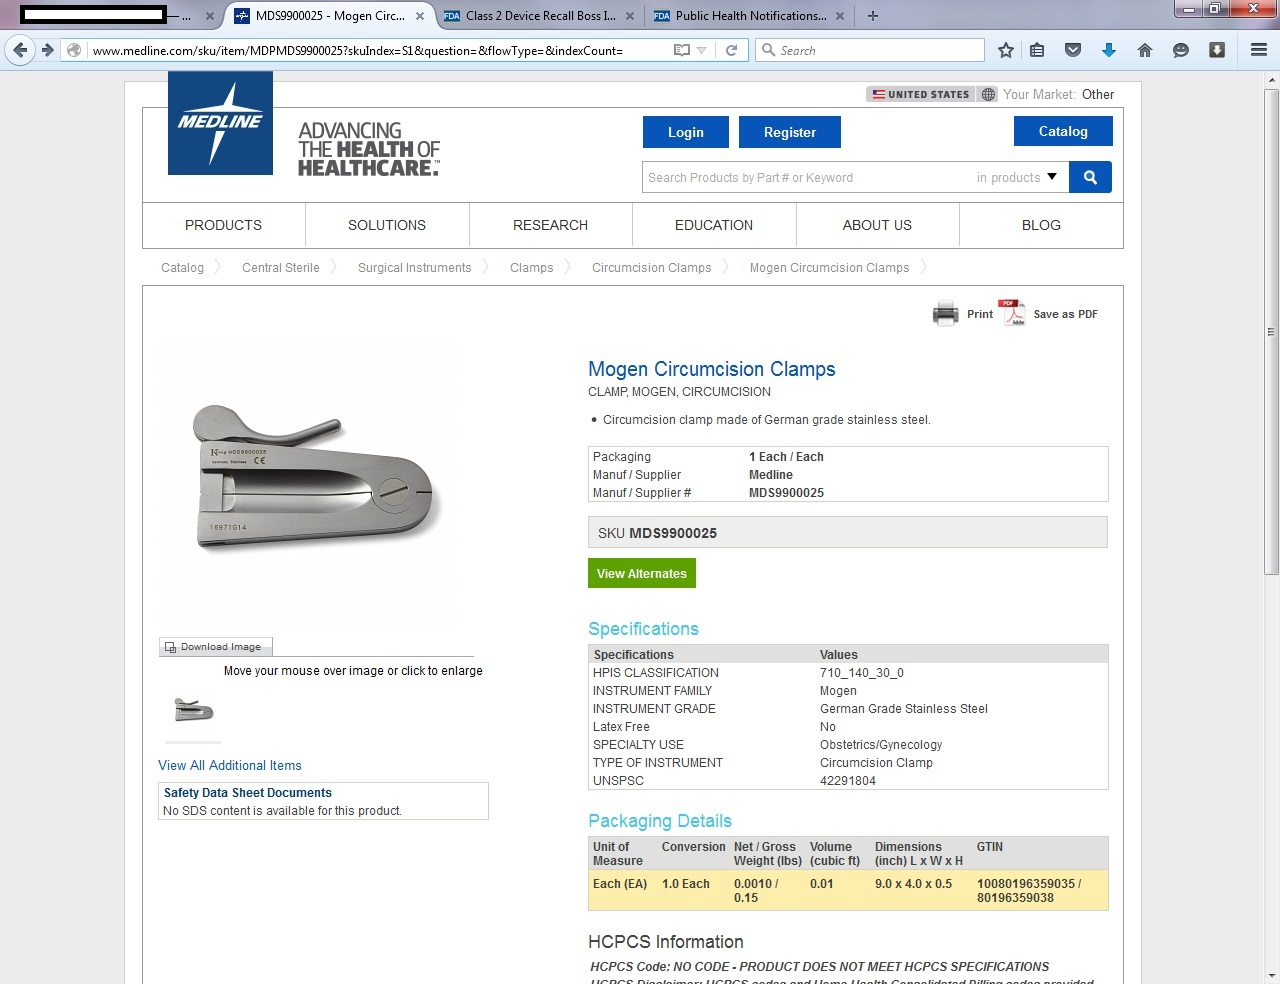 Mogen clamp in Medline's online catalog - in spite of a 2014 FDA recall notice